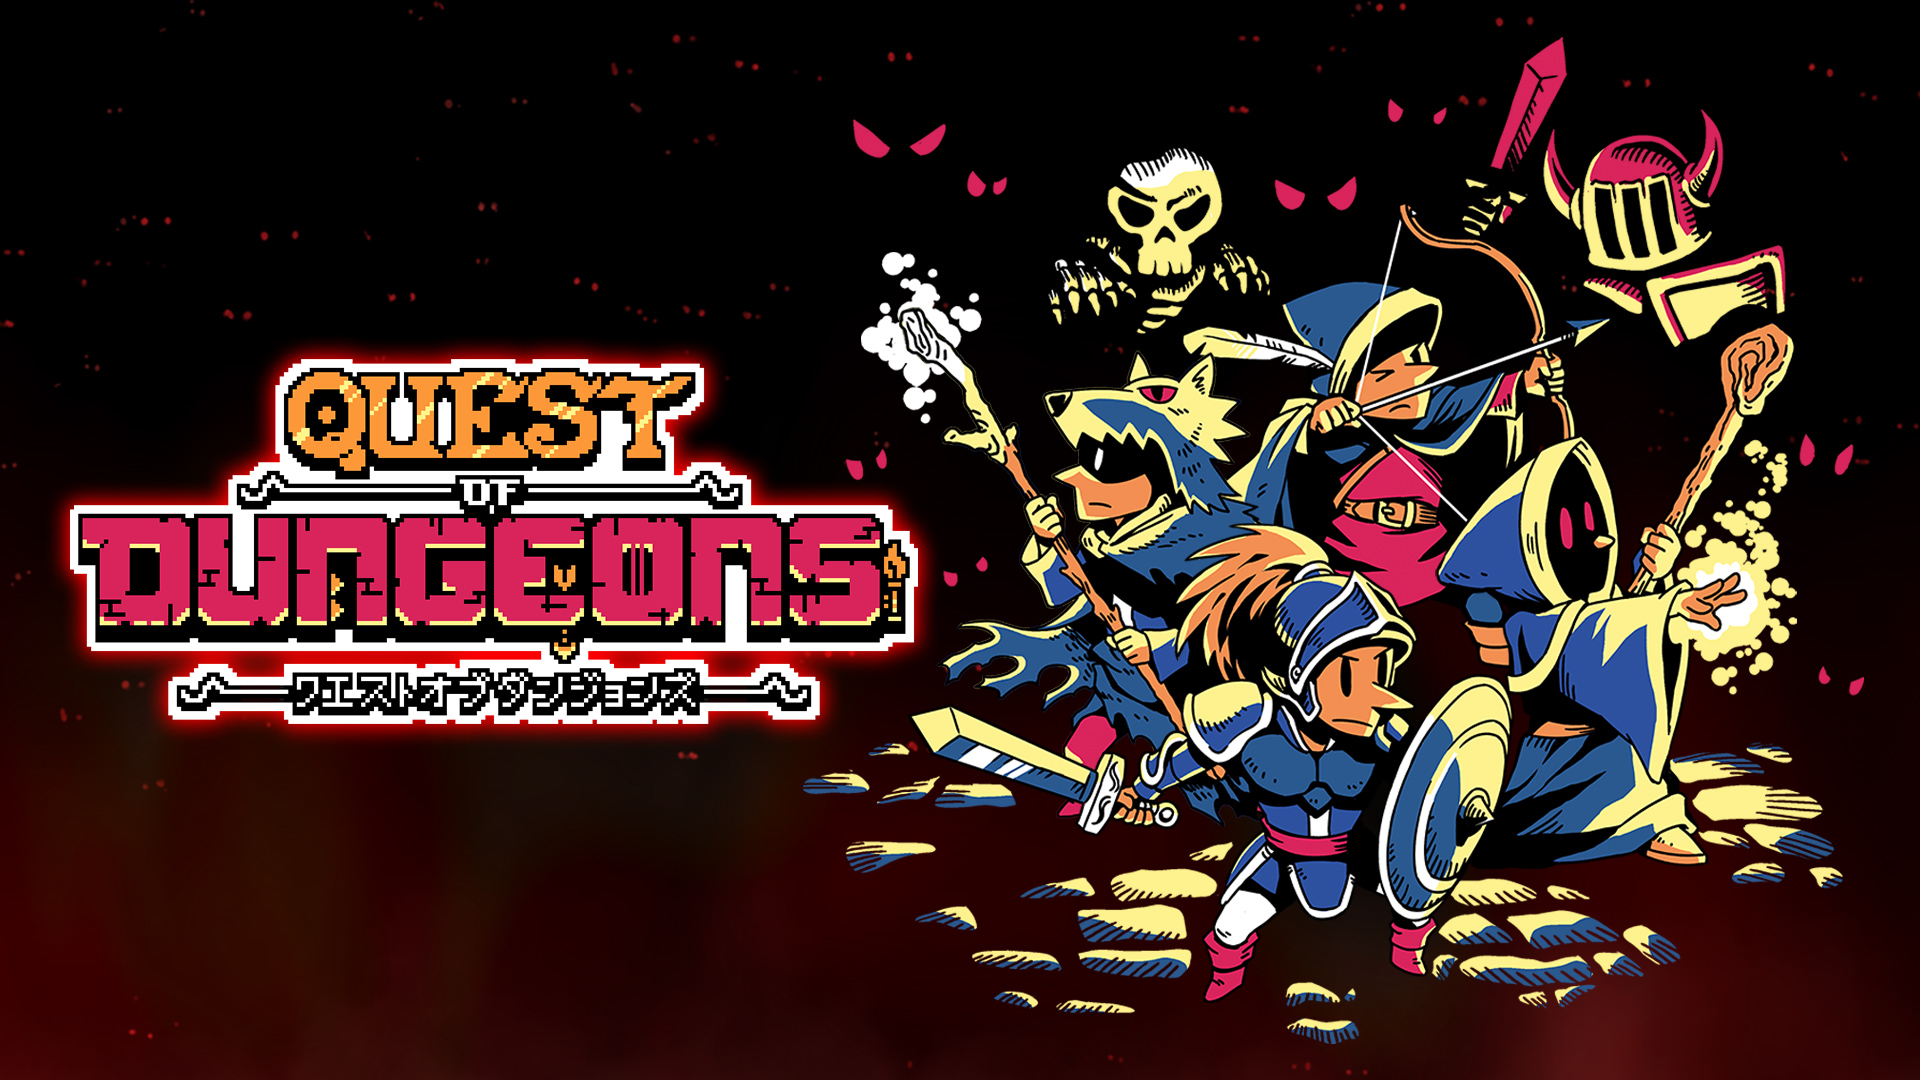 Quest of Dungeons update out now on Switch (version 1 0 2